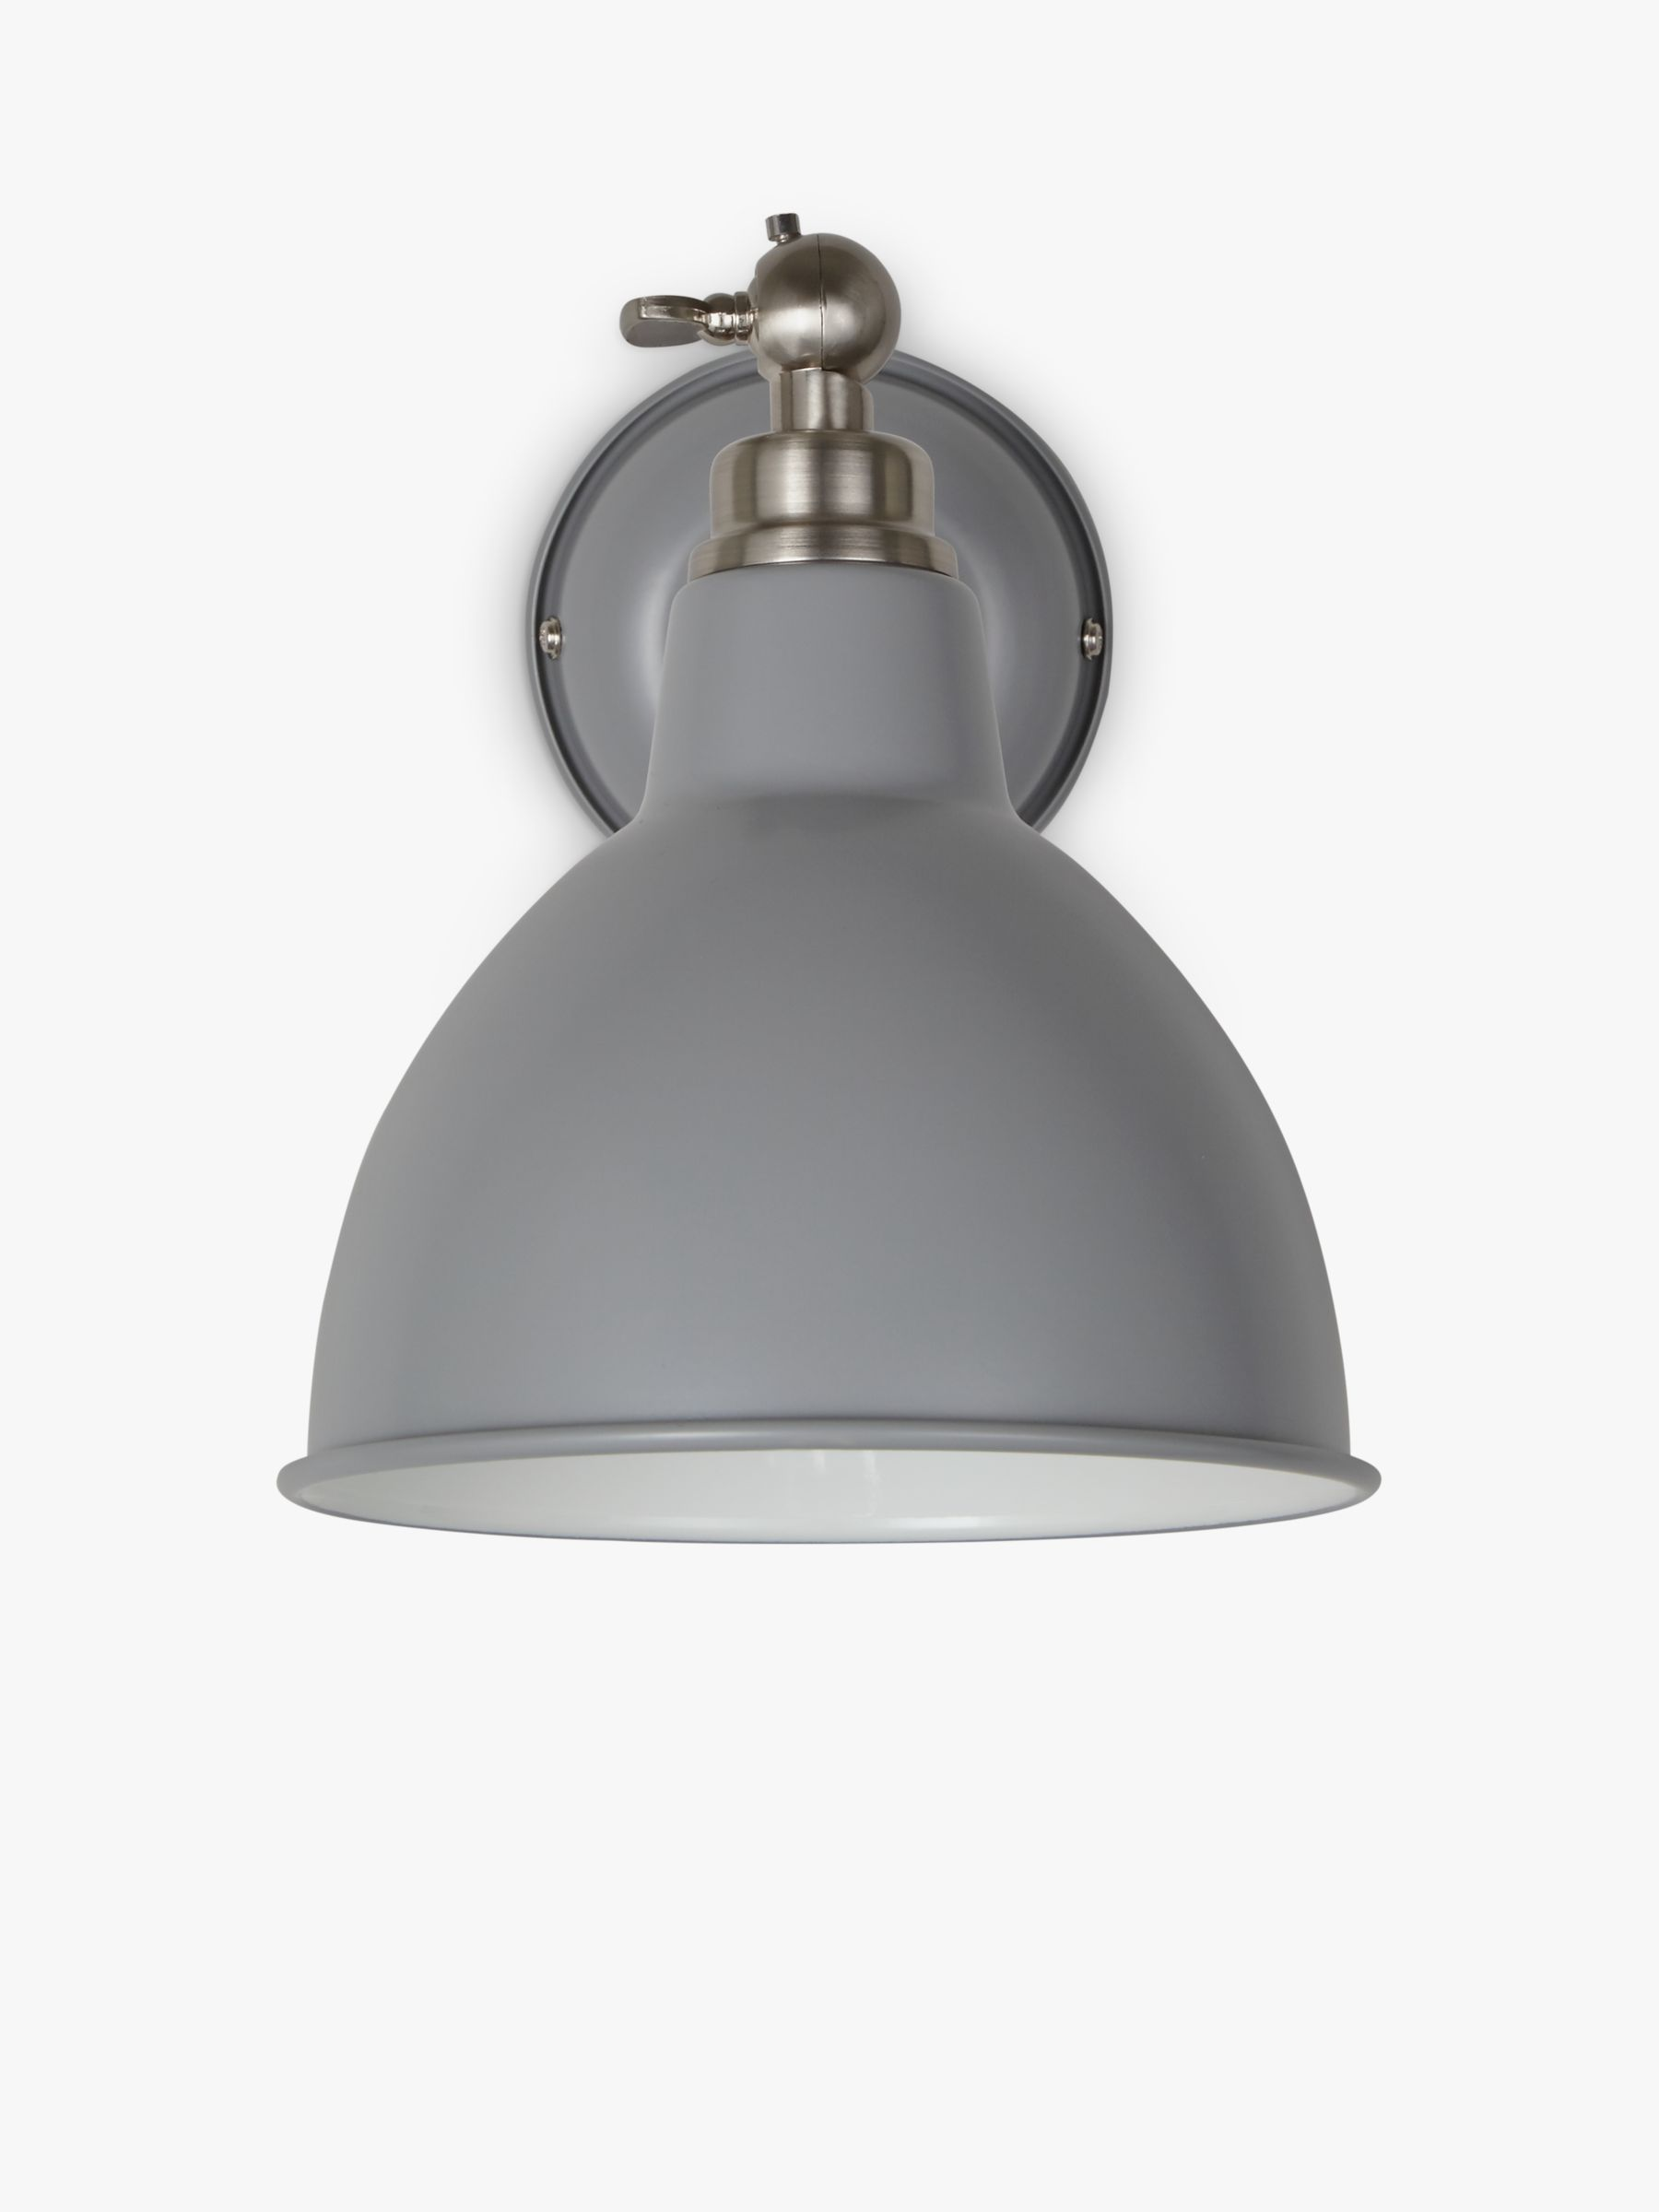 John Lewis Wall Lights Glass : Buy John Lewis Aiden Wall Light, Grey John Lewis